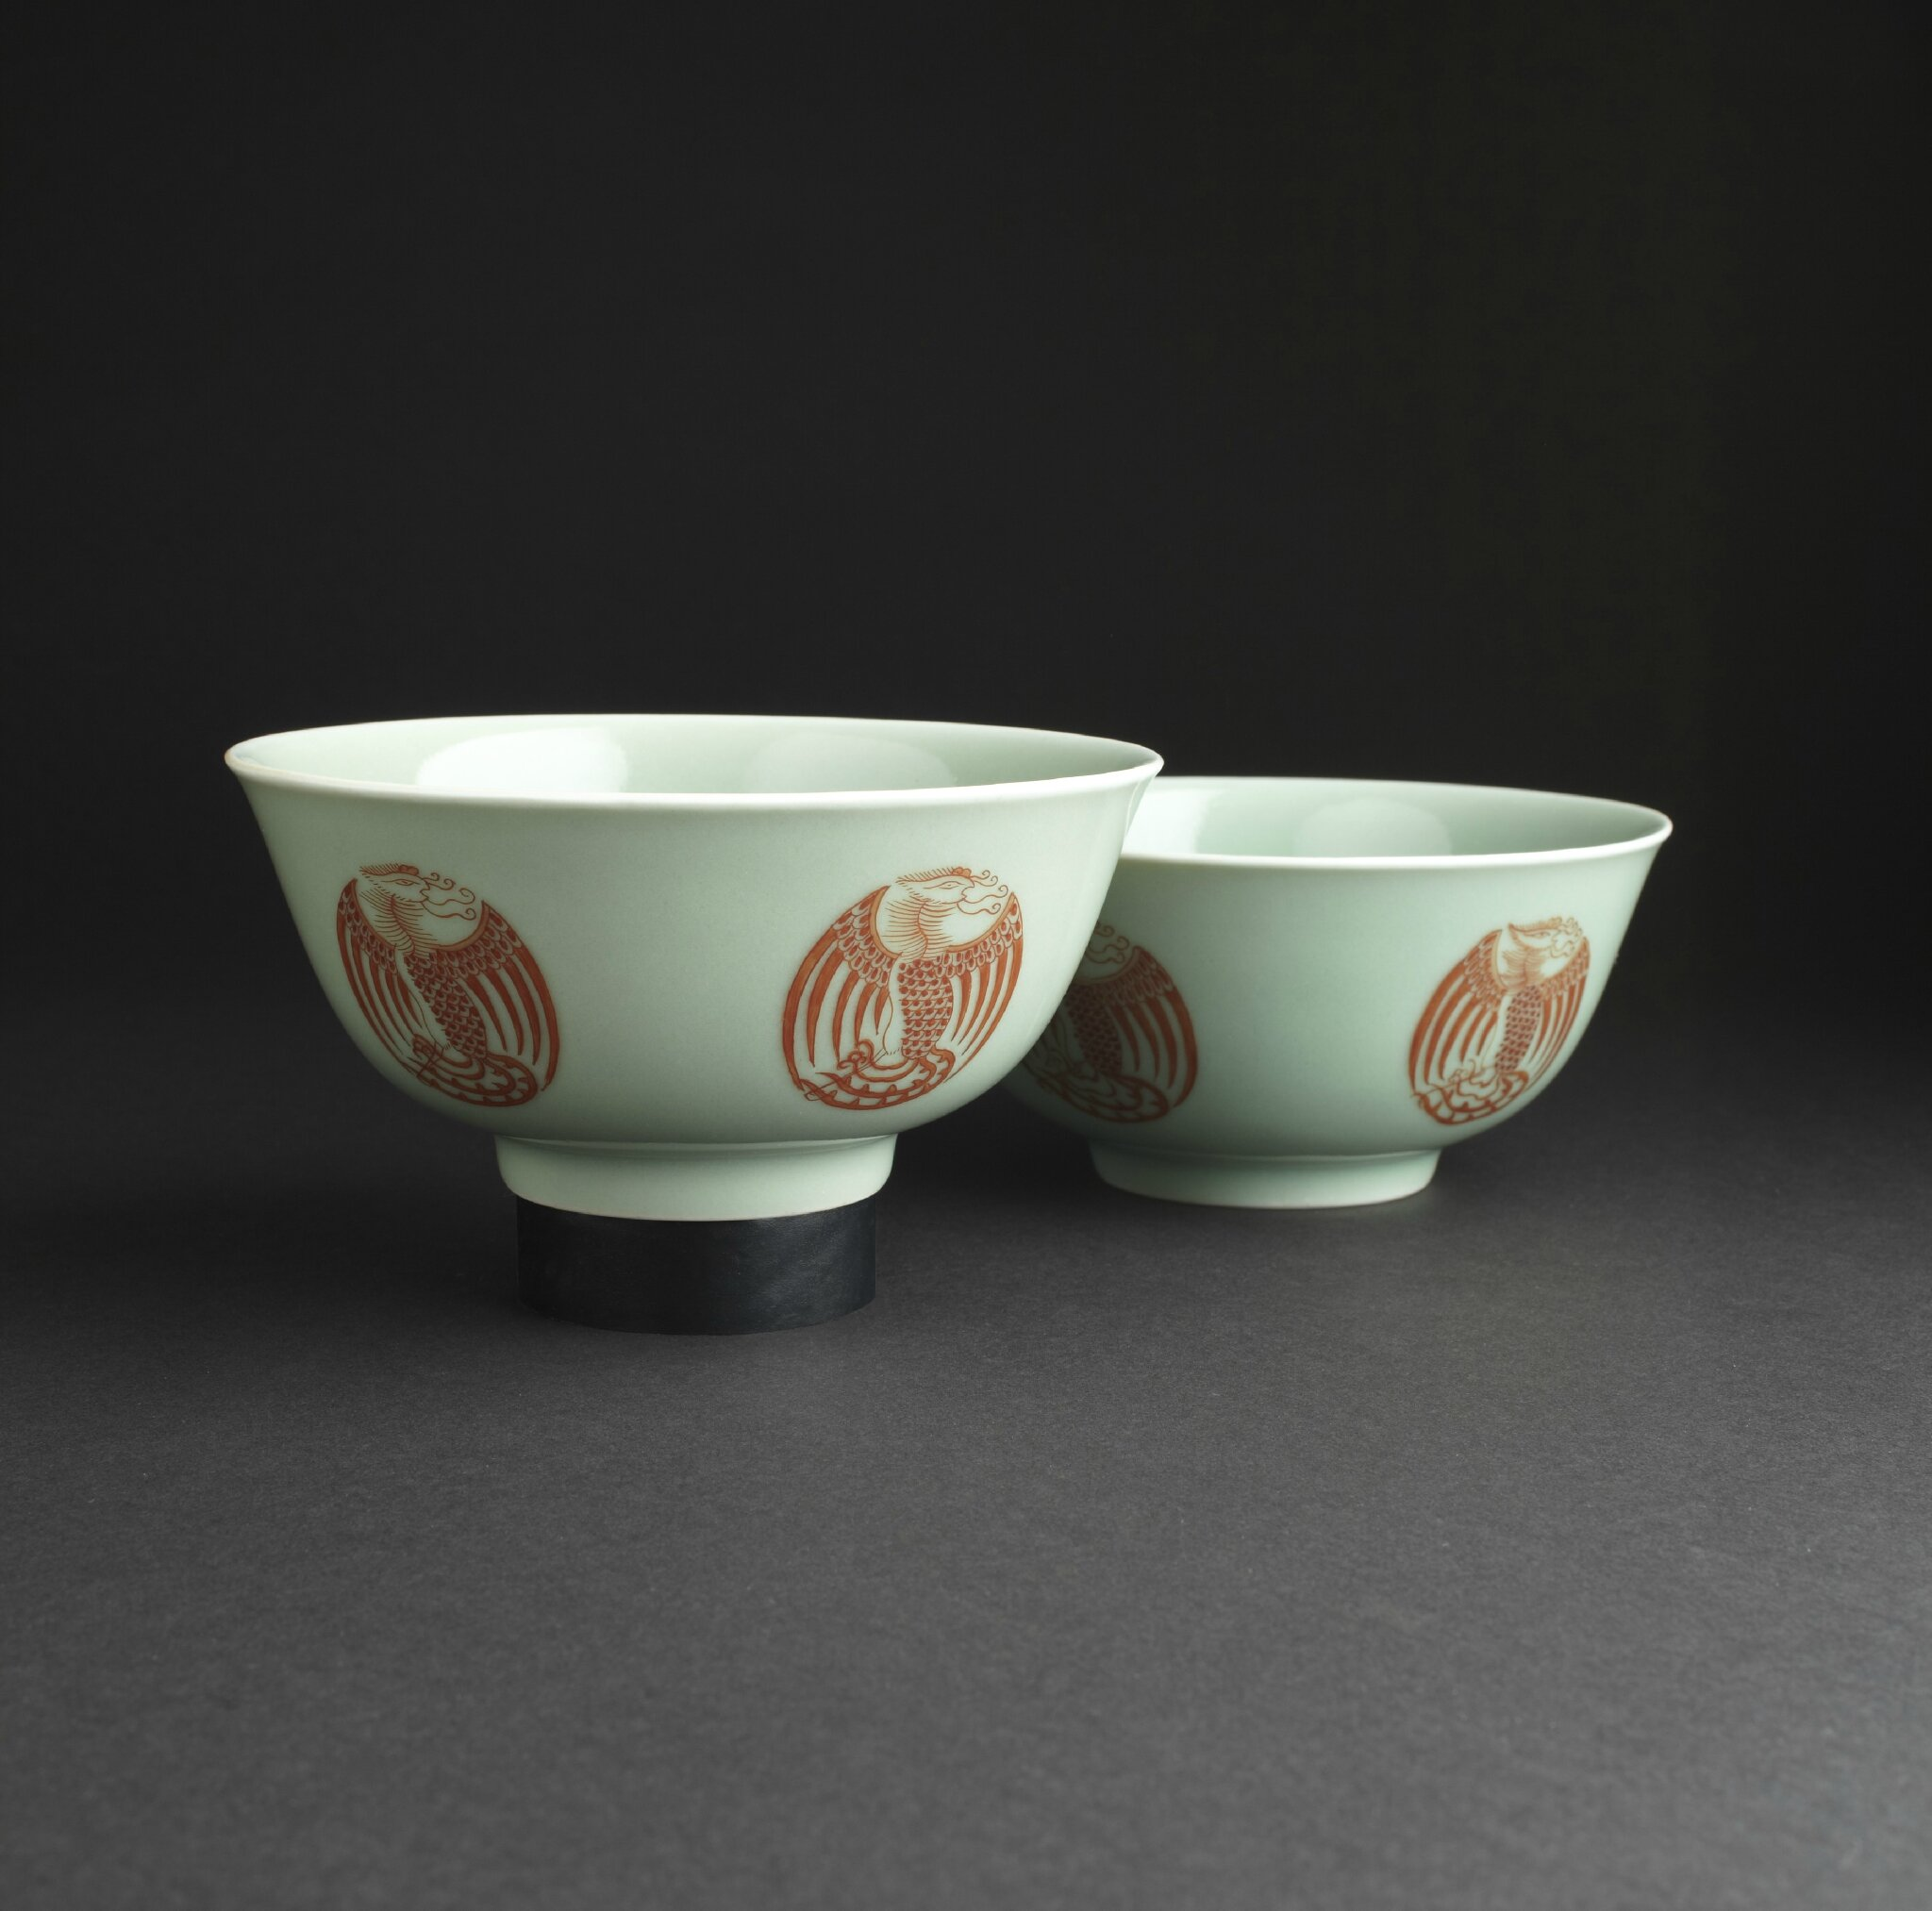 A pair of celadon-ground and iron-red 'Phoenix' medallion bowls, Daoguang seal marks and of the period. Photo courtesy Lyon & Turnbull, Edinburgh.